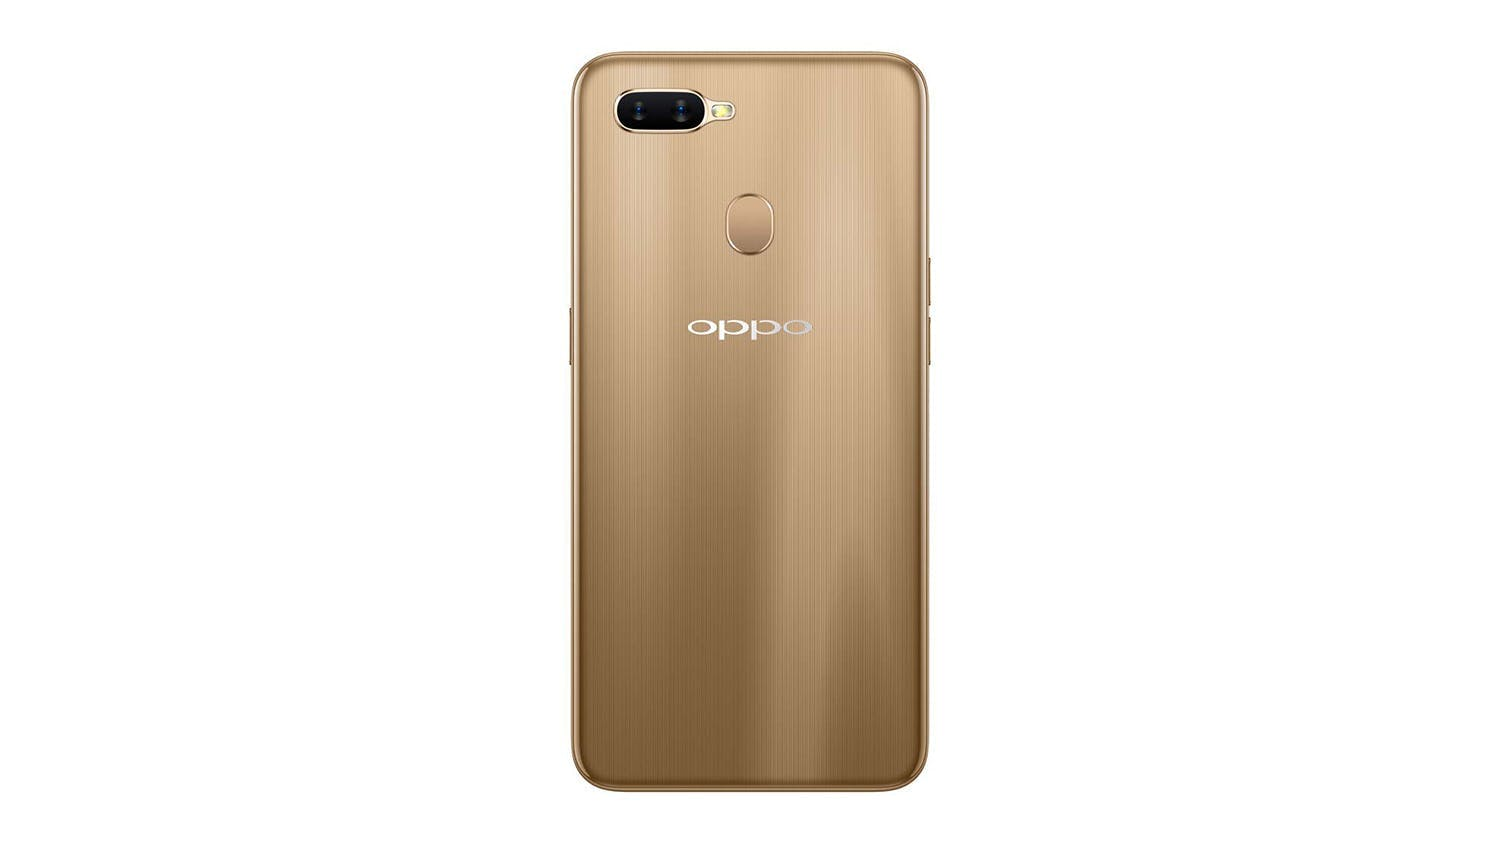 2degrees Oppo AX7 Smartphone - Gold